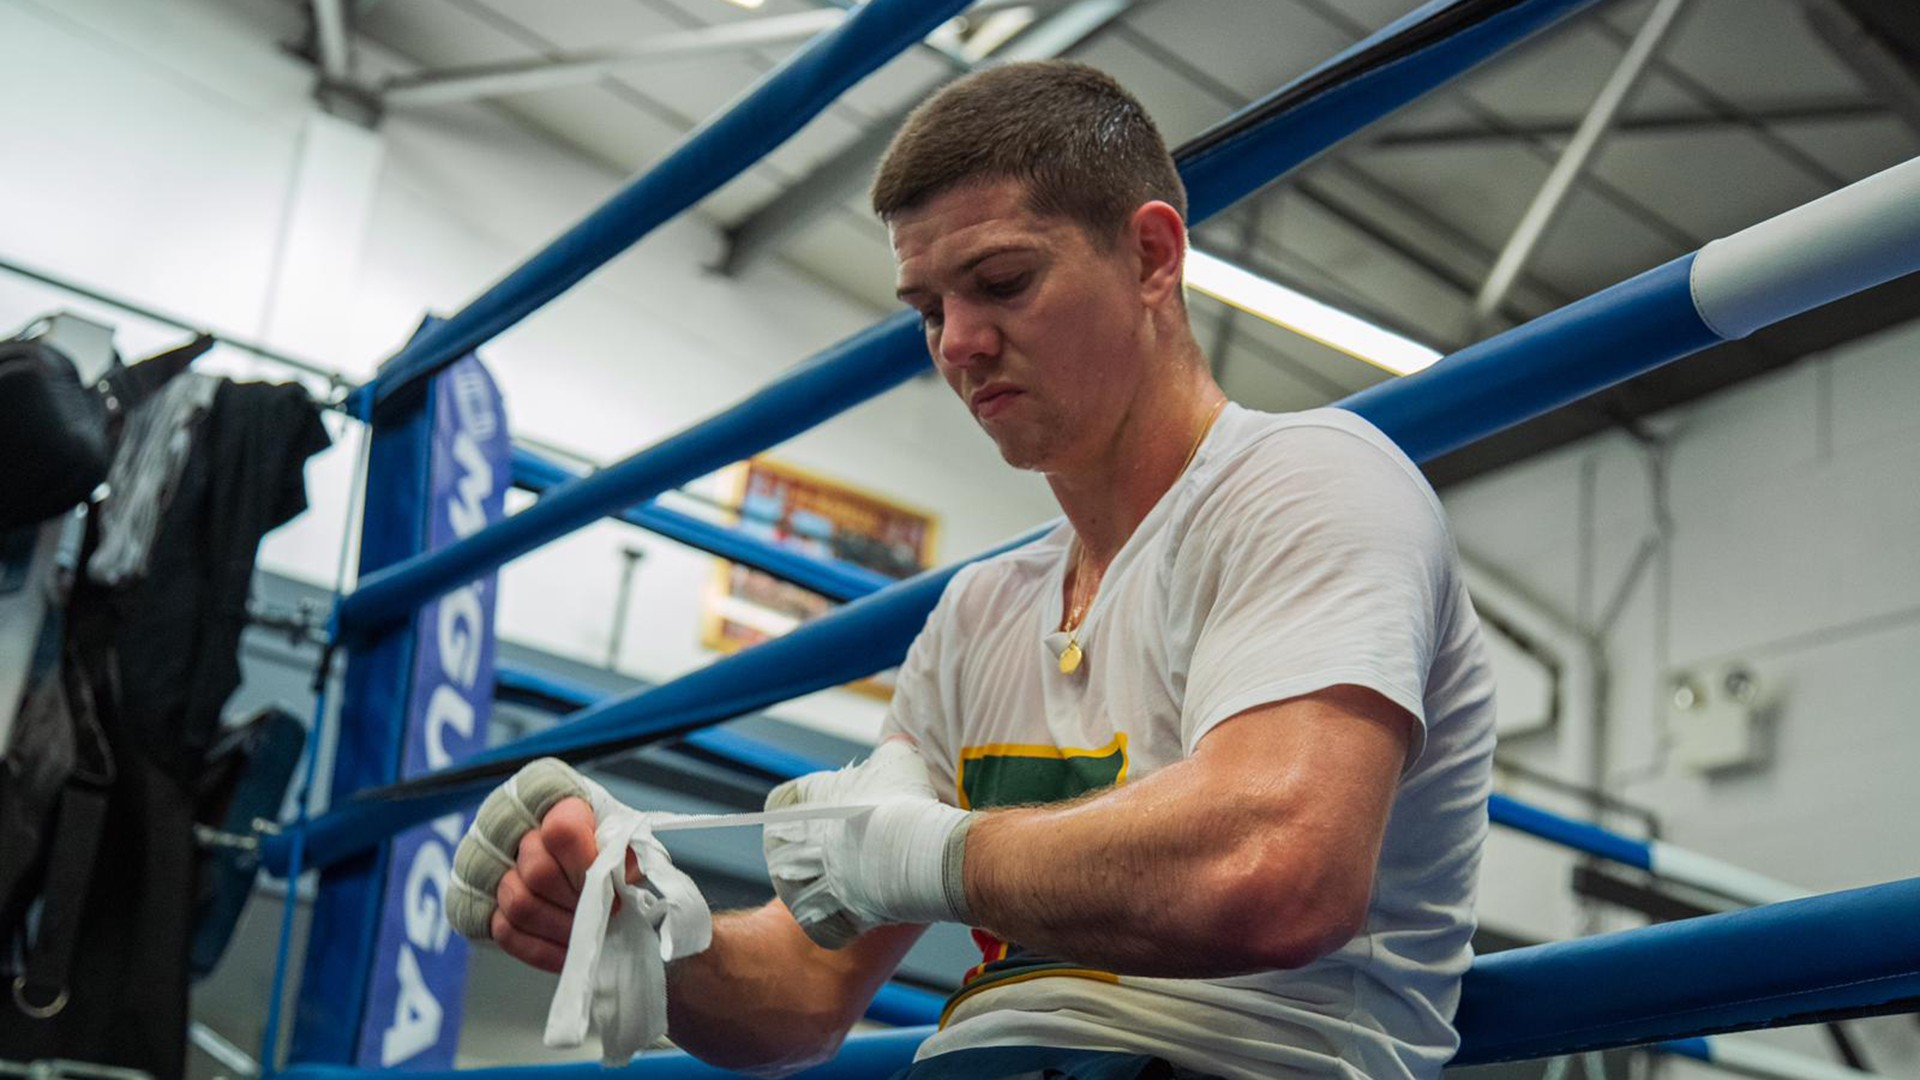 Luke Campbell strapping boxing glove in gym